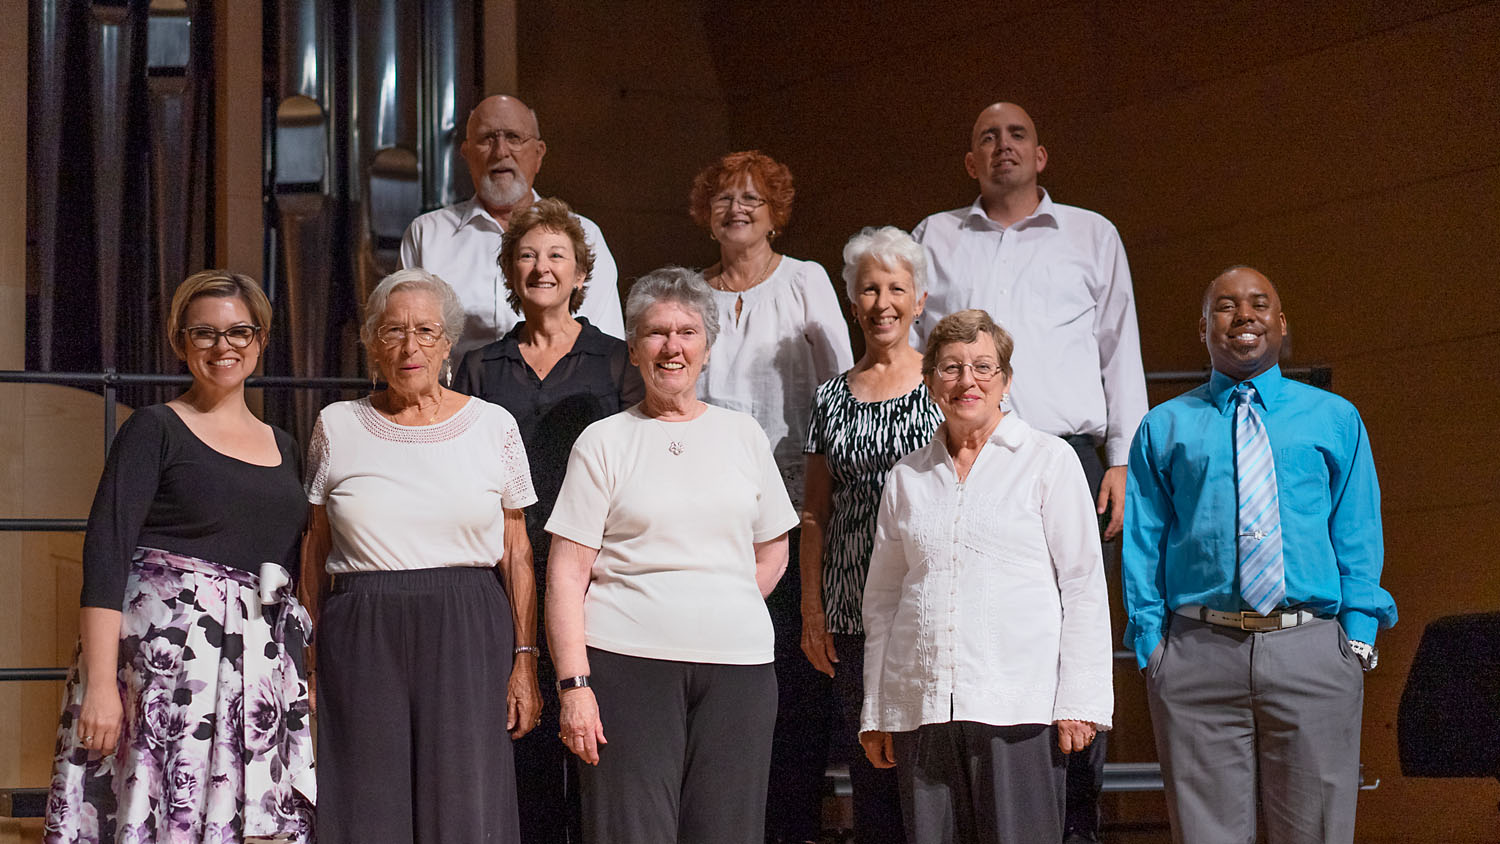 The Choir of Green Valley Presbyterian Church with organist Amy Homer Smith and director Kaymen Carter. PHOTO CREDIT: Dorothy Riess